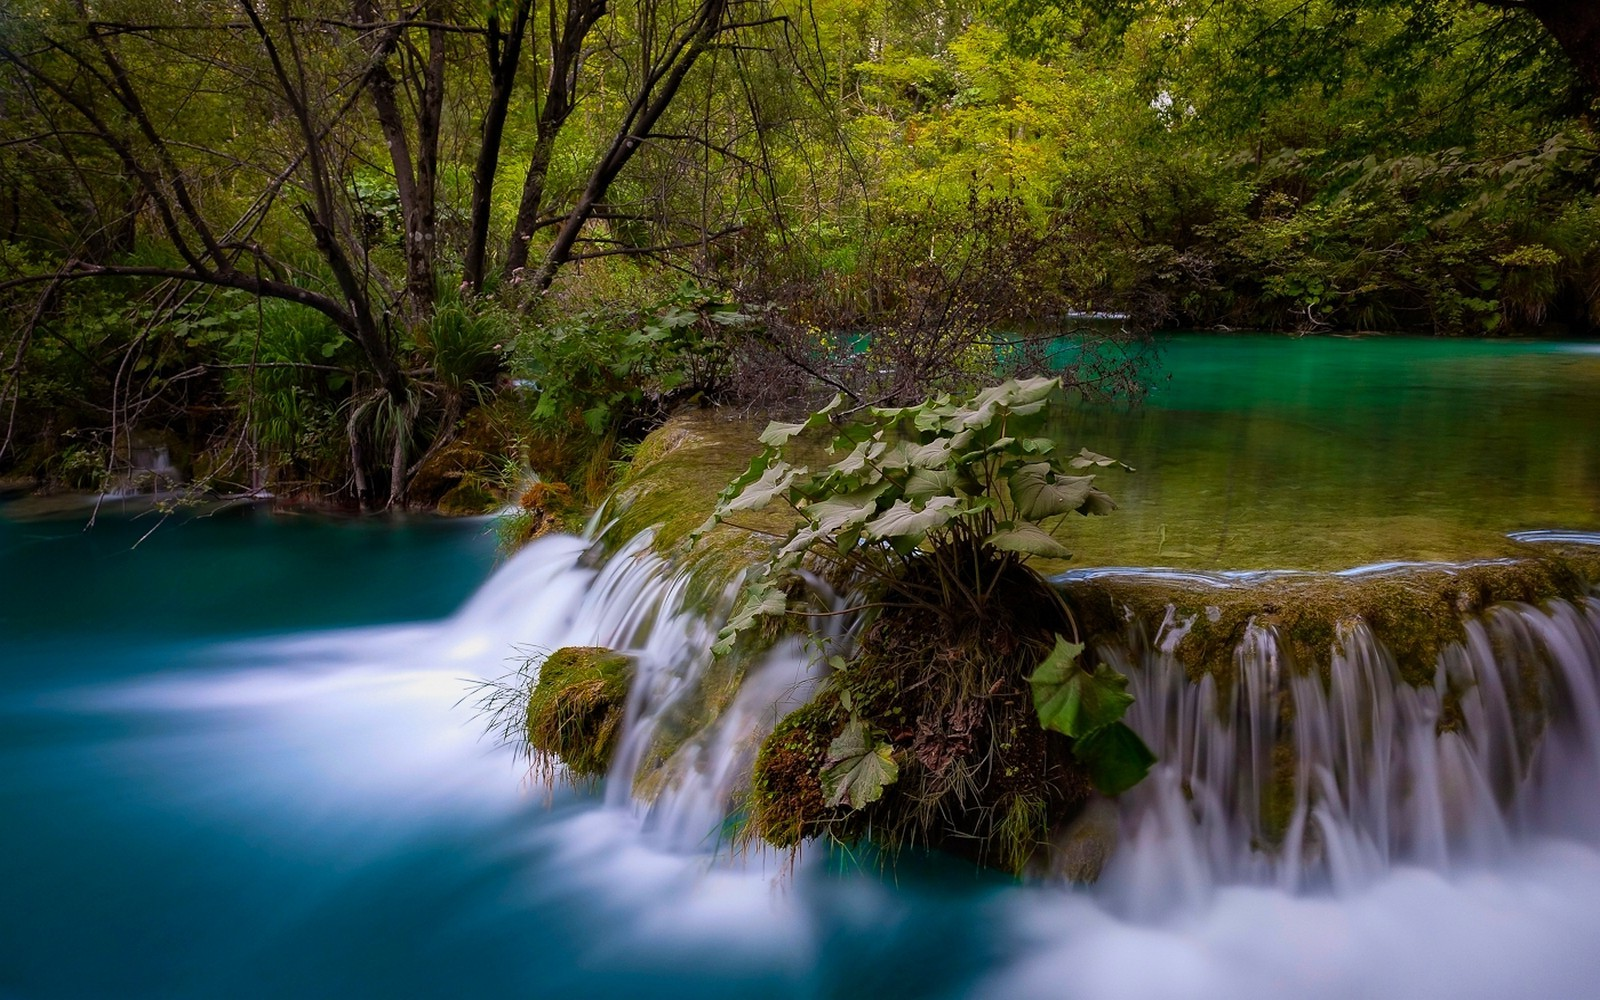 Water Fall Hd Wallpaper 4k Nature Landscape Waterfall Long Exposure Forest Pond